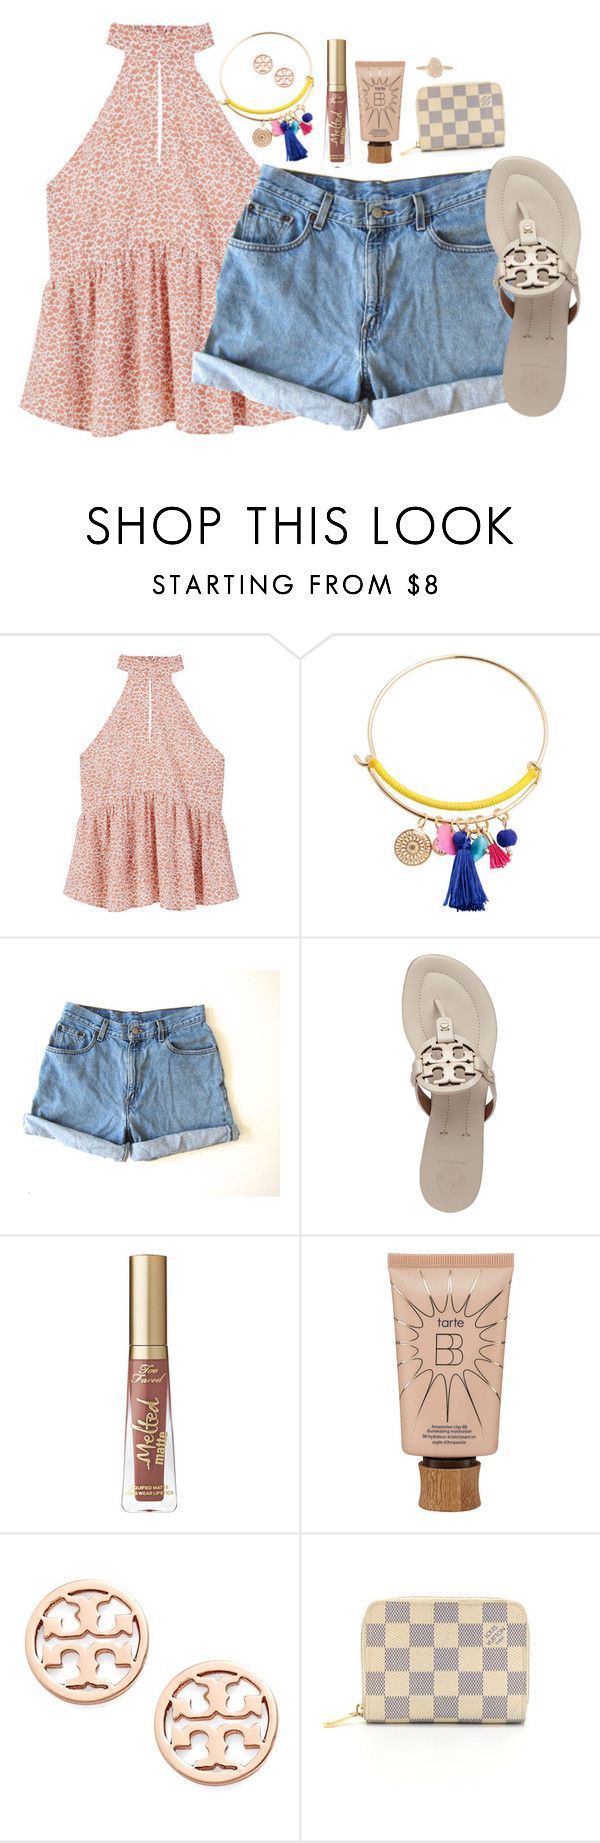 """""""s u m m a"""" by thatprepsterlibby ❤ liked on Polyvore featuring MANGO, Levi's, Tory Burch, tarte, Louis Vuitton and Kendra Scott"""